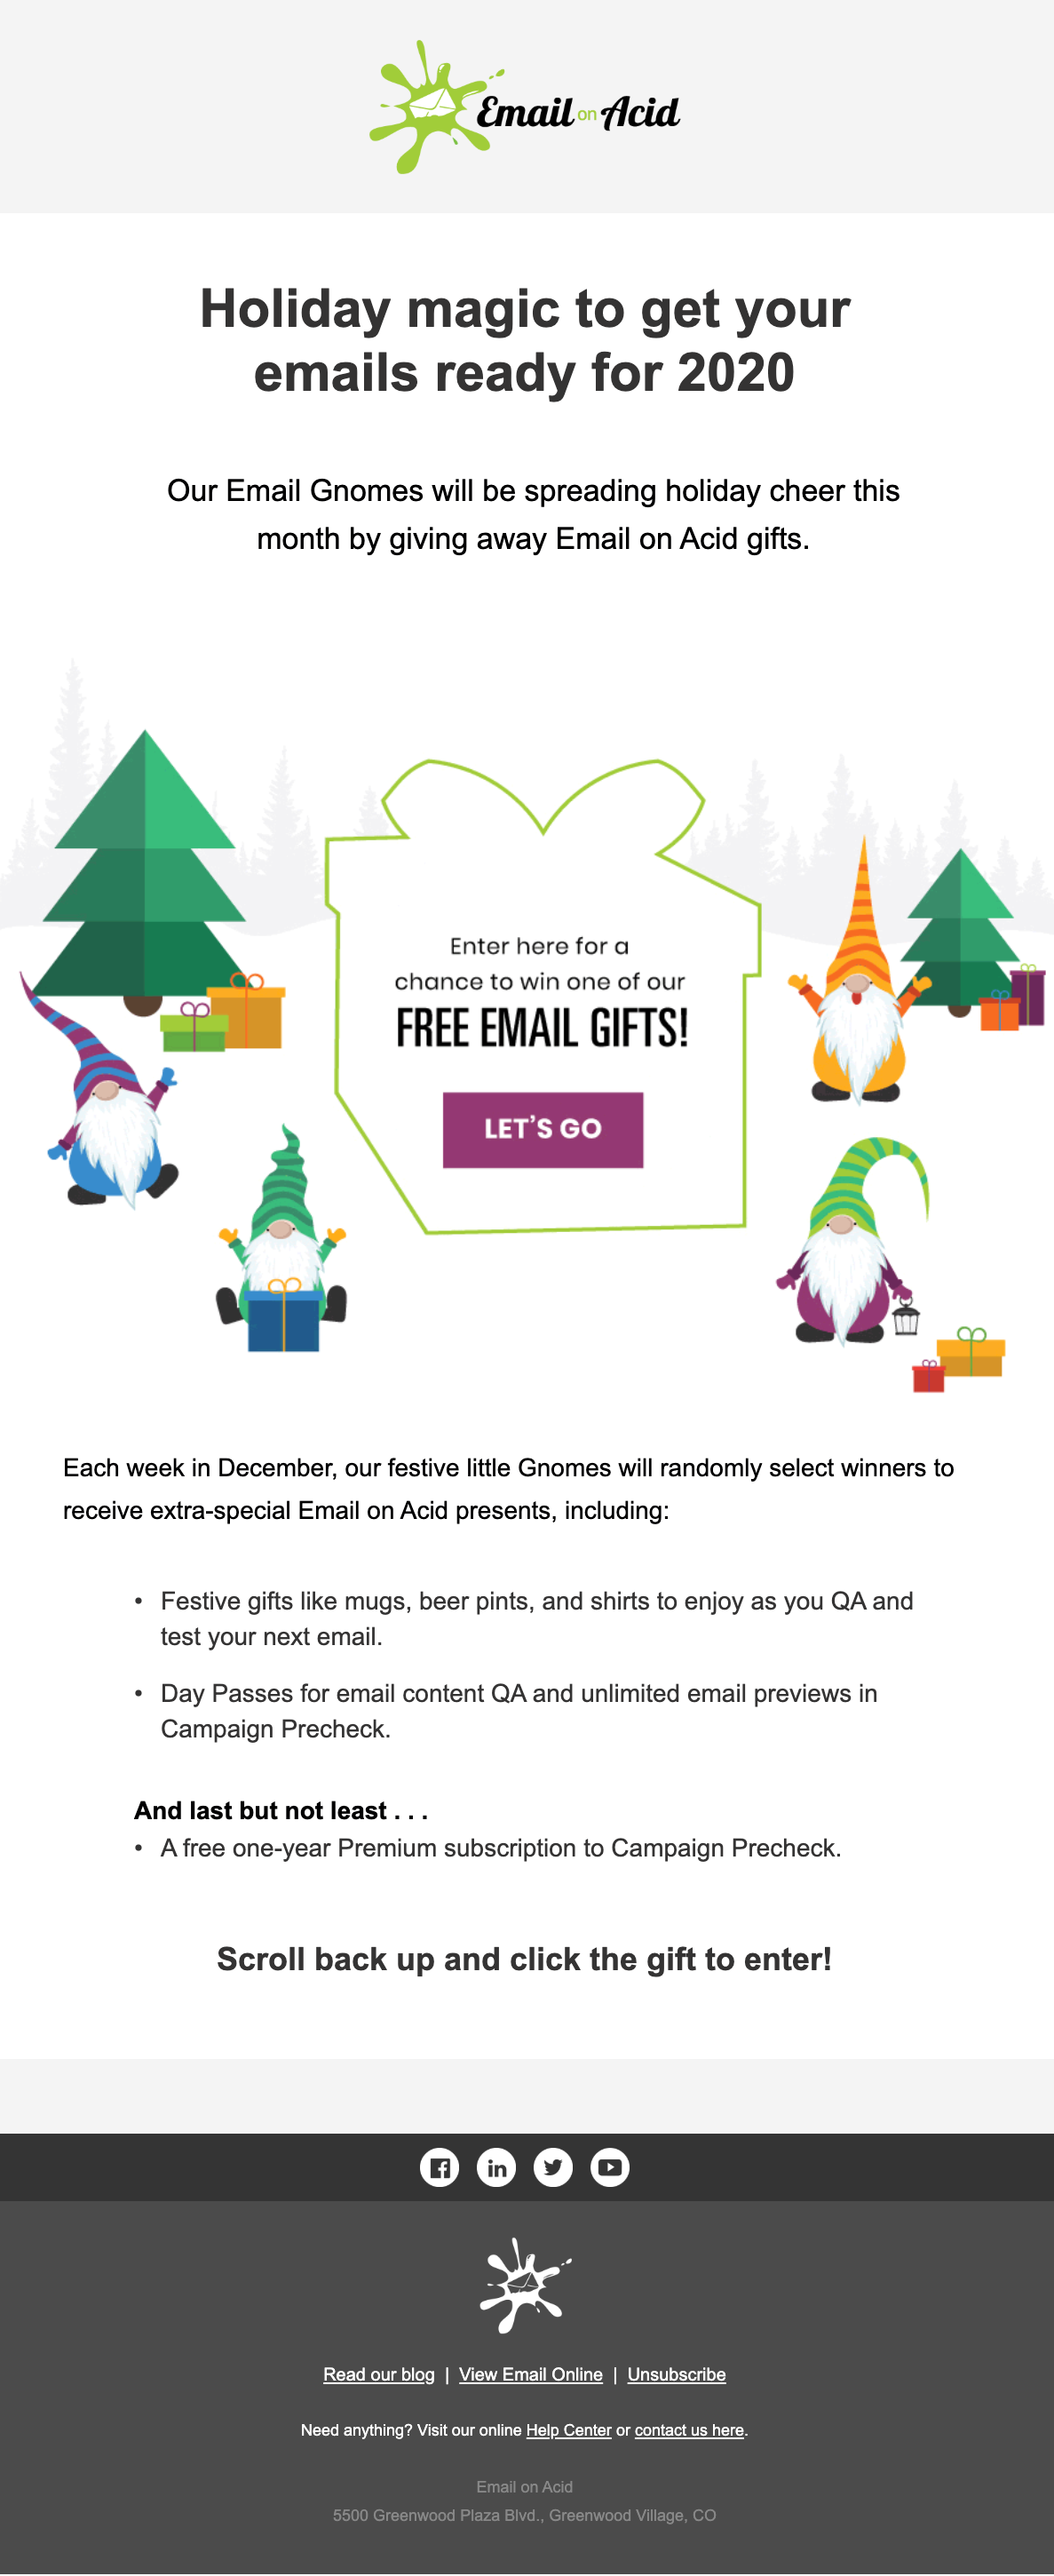 EOA's interactive email with a scratch-off present